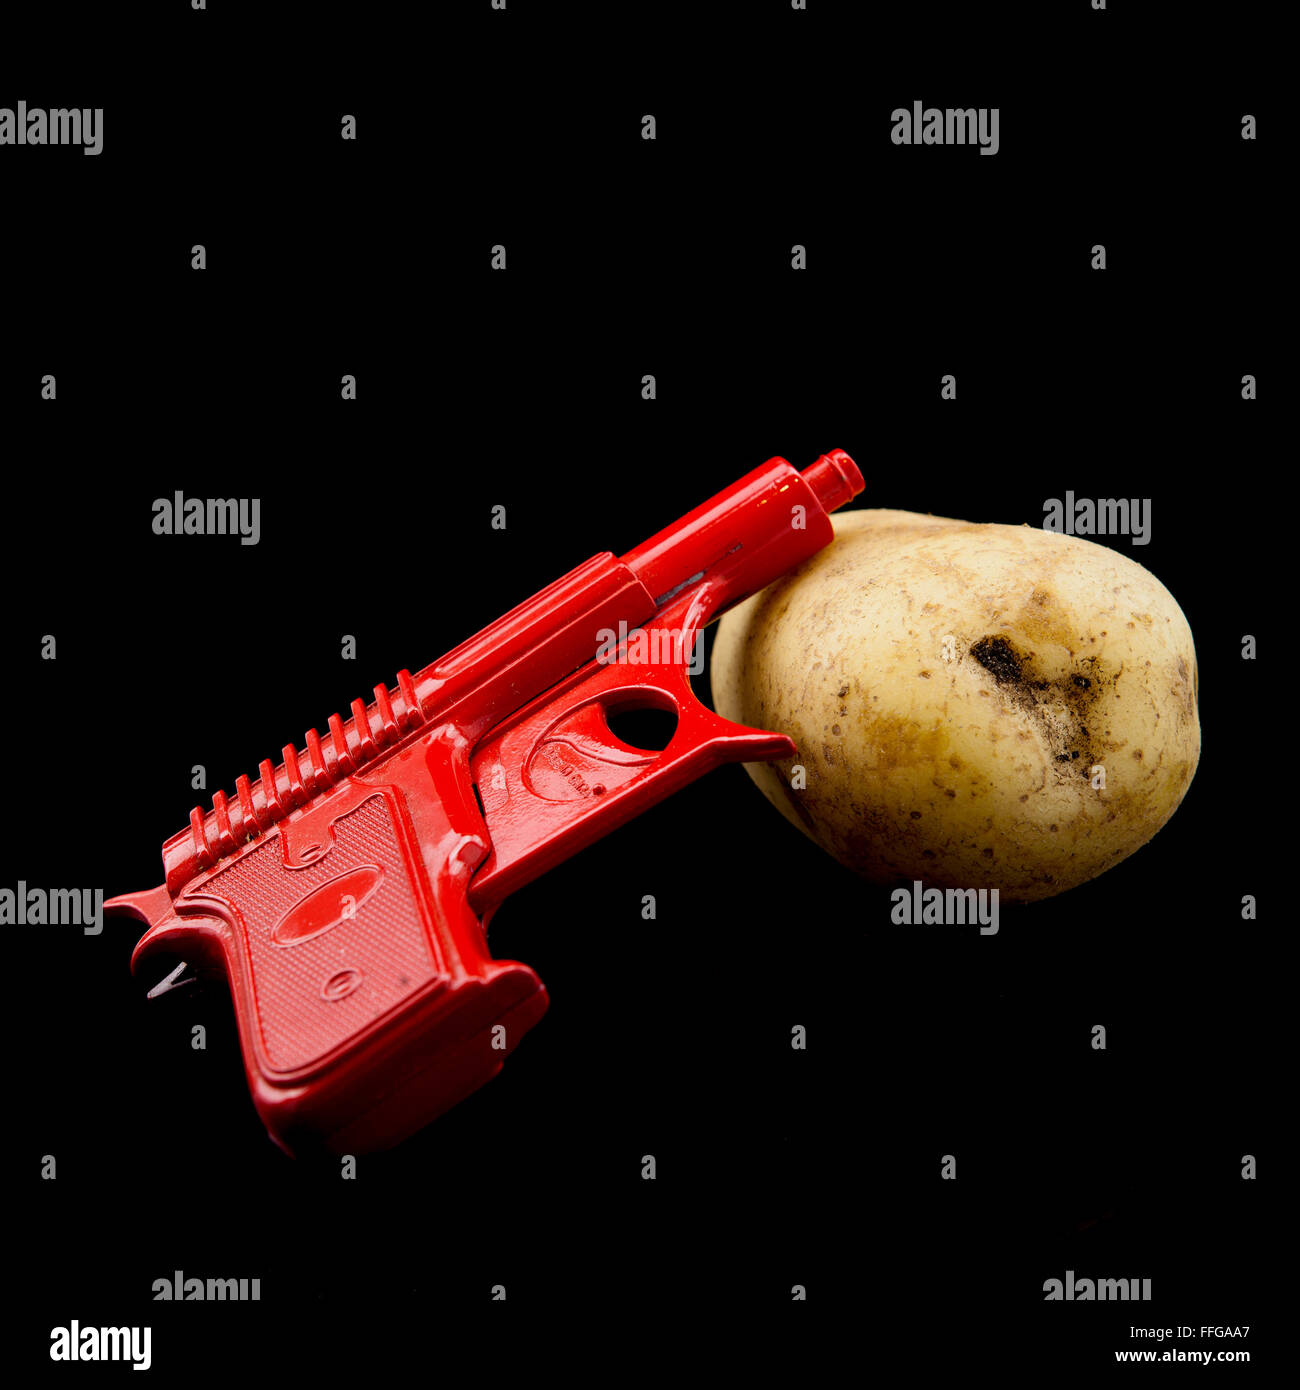 Spud Gun with potato on Black Background - Stock Image